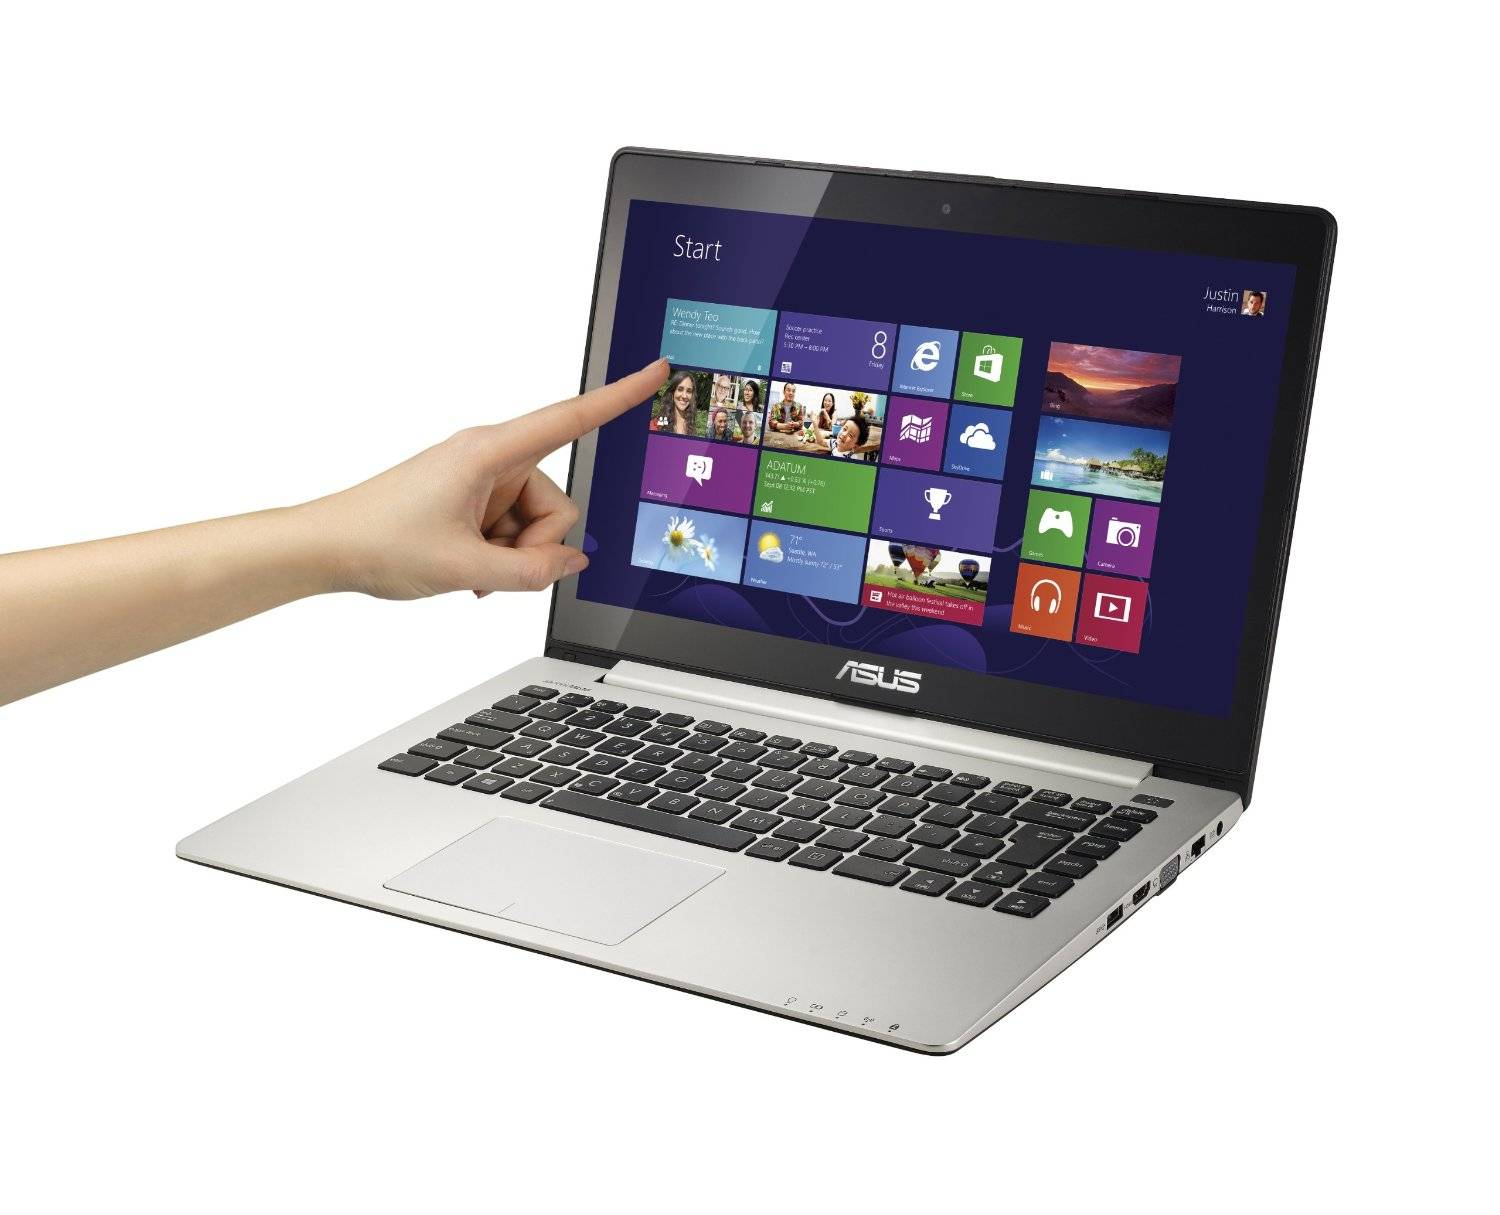 ASUS Ultrabook  14-Inch Touchscreen Laptop